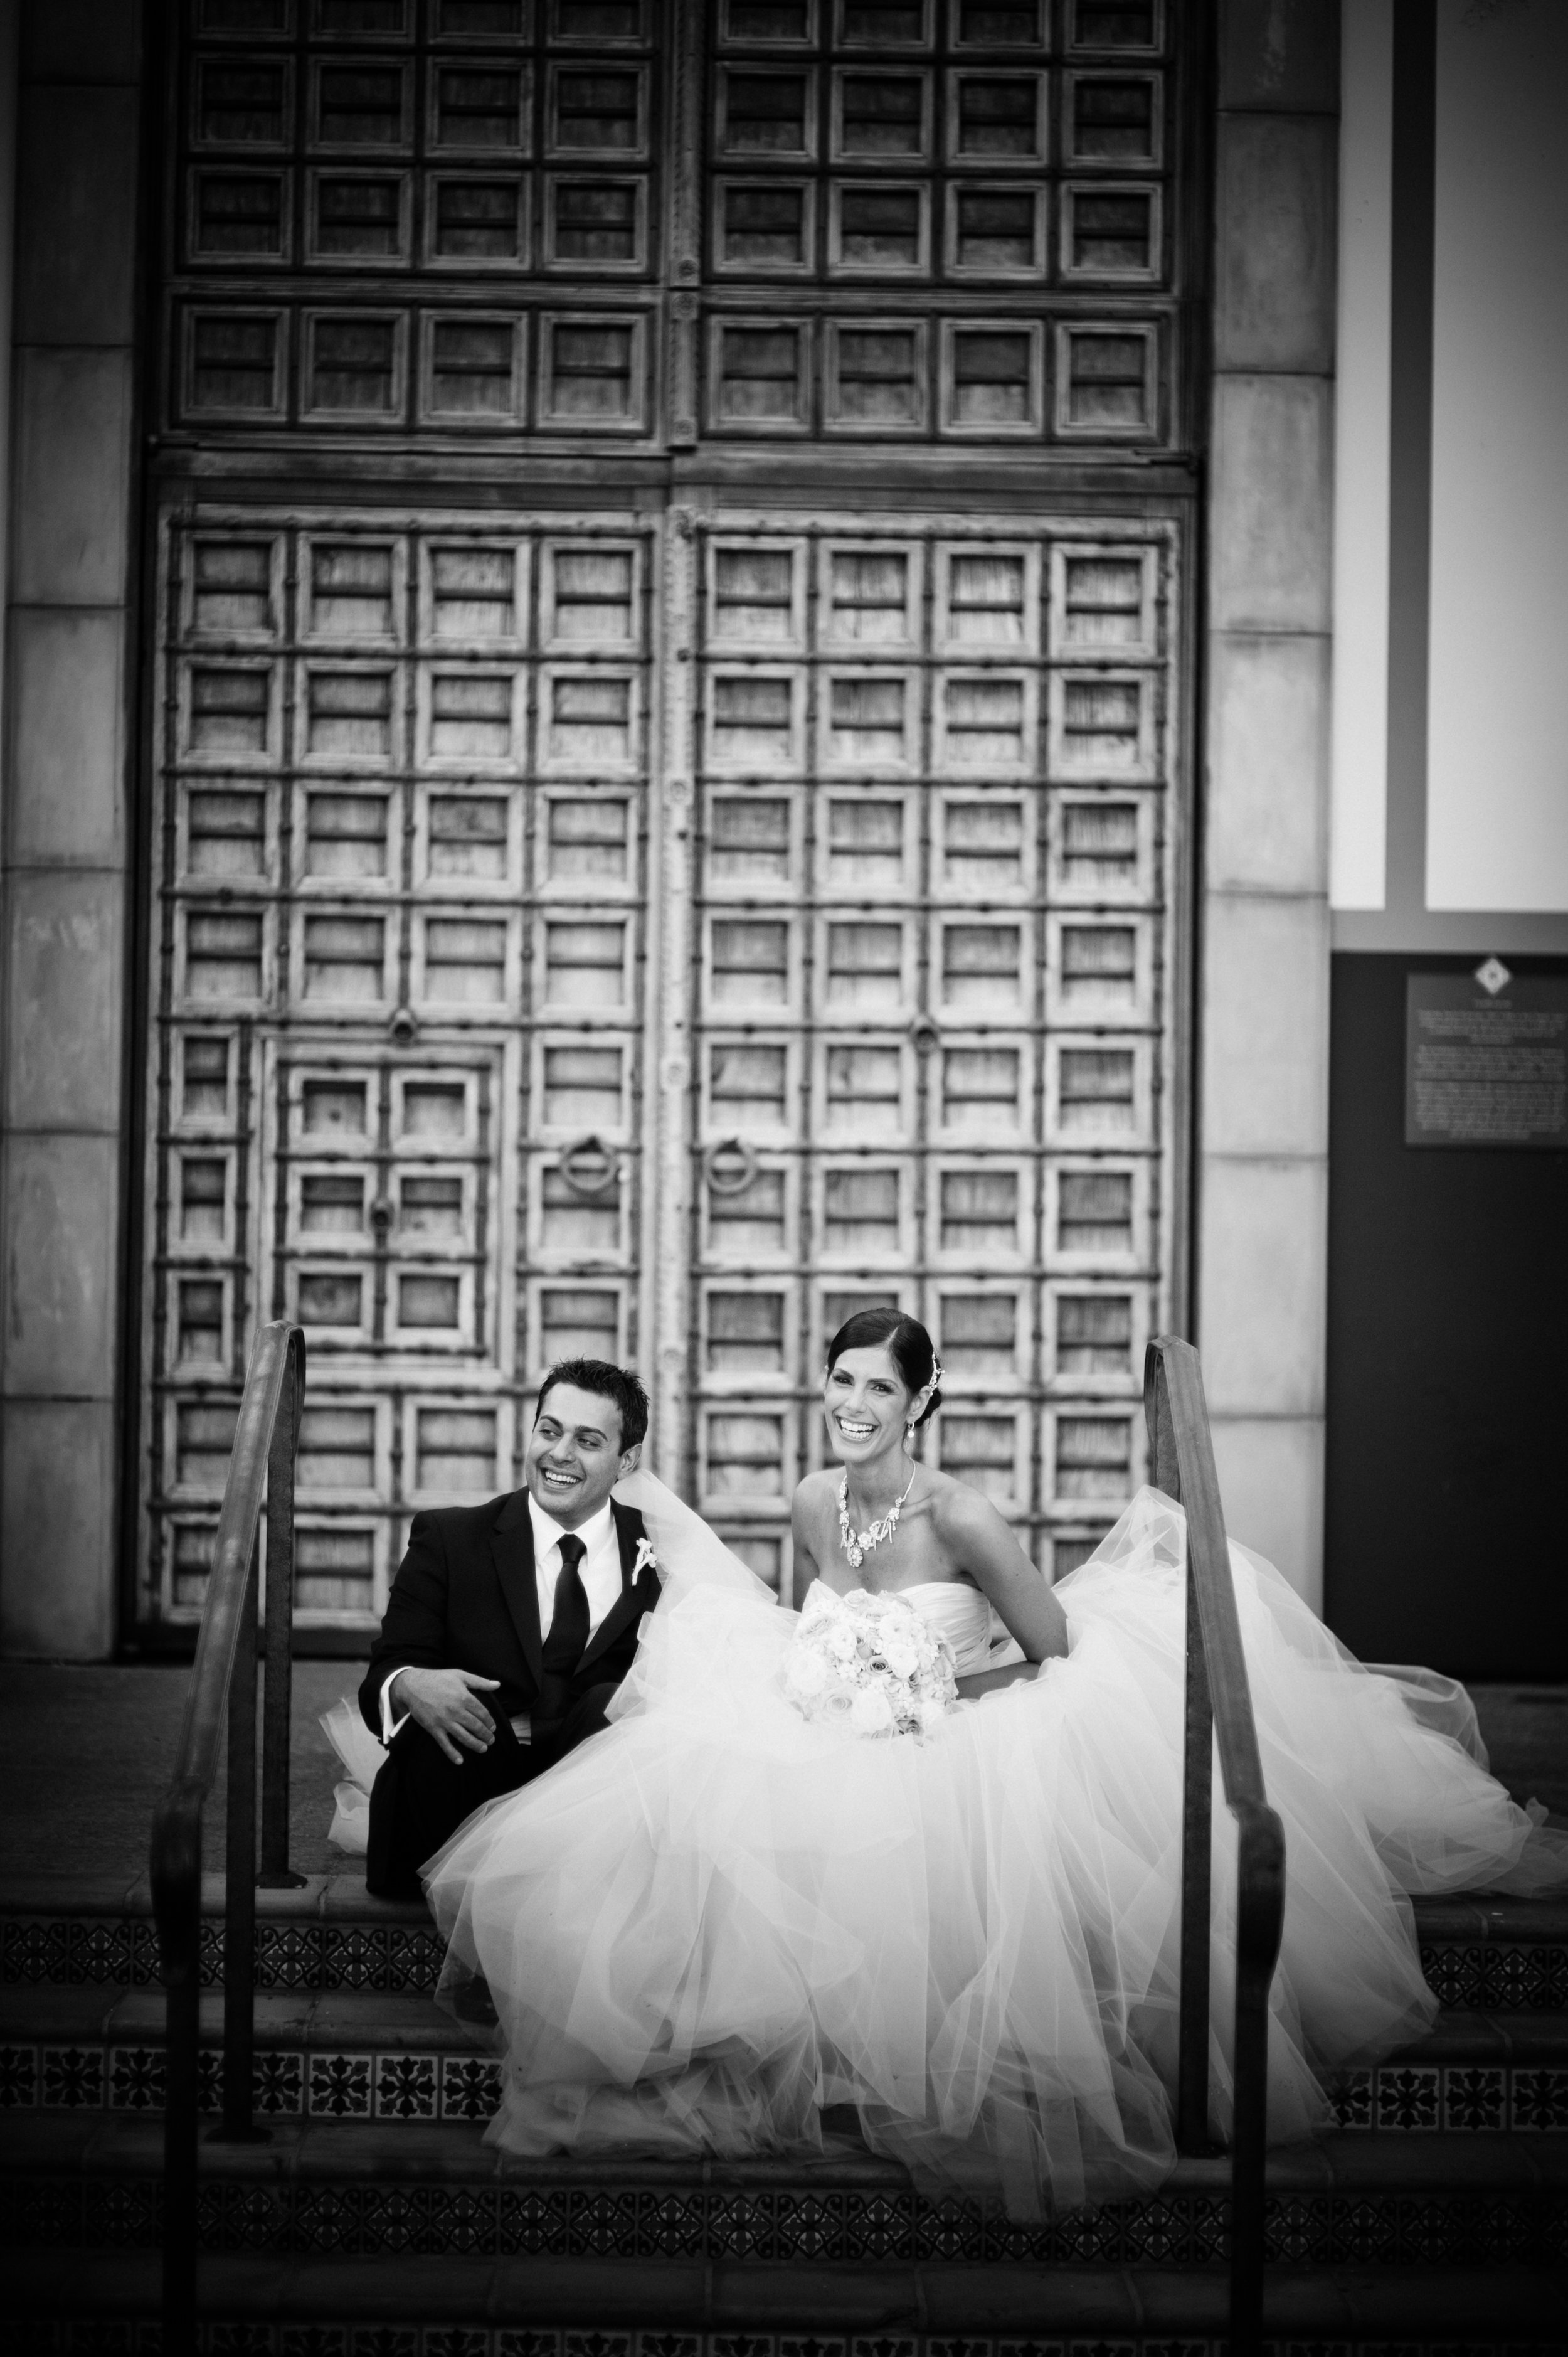 10  bride and groom first look bride and groom holding hands bride and groom special moment bride and groom poses Christine Johnson Photography Life Design Events .jpg